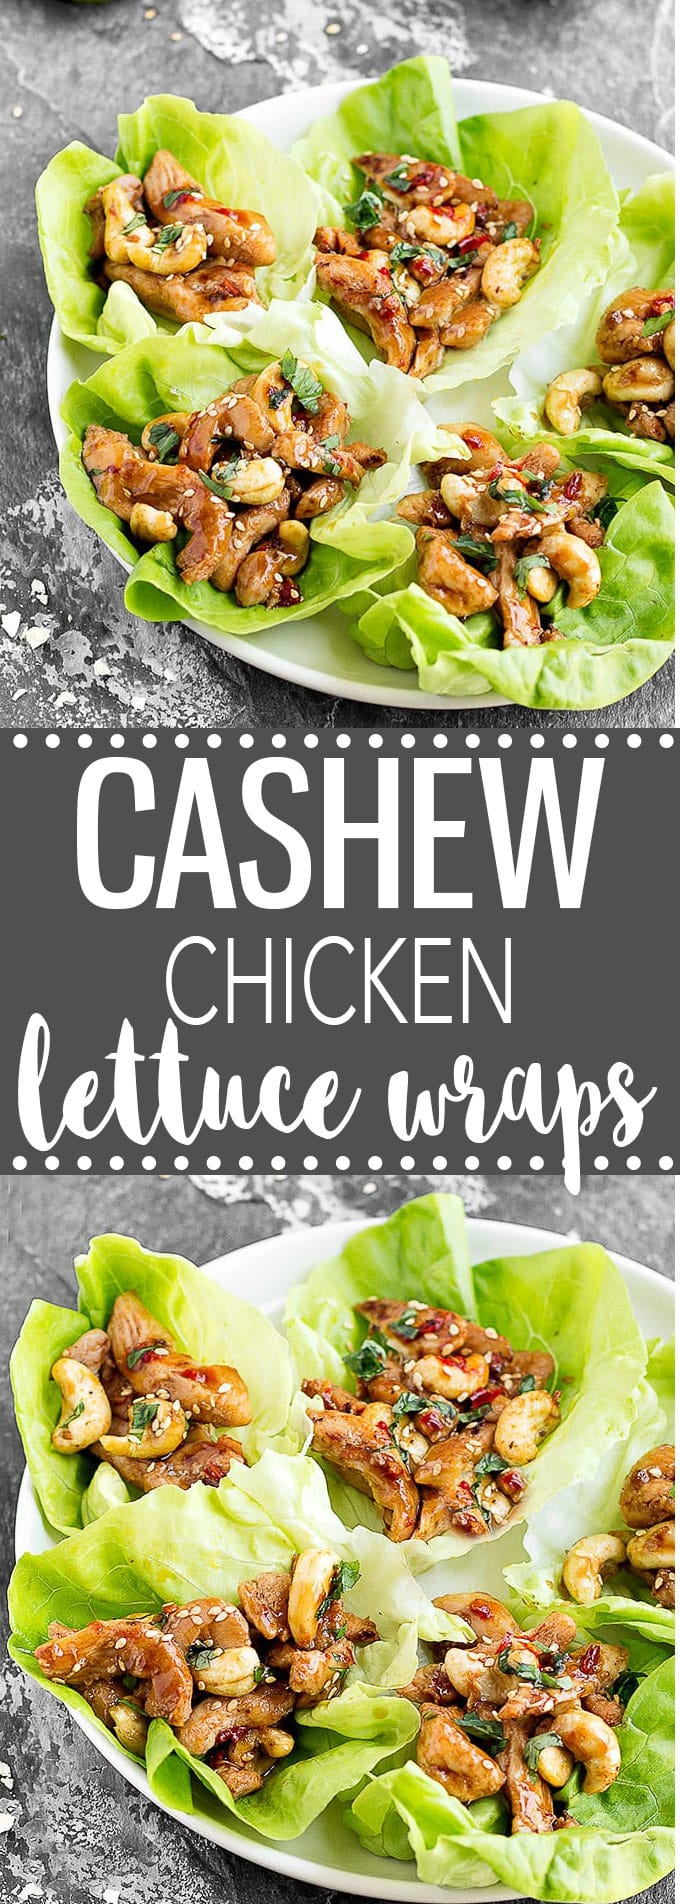 These Cashew Chicken Lettuce Wraps are perfect for lunch, dinner, or even as a tasty appetizer. Simple, easy and healthy. Each wrap has only 165 calories! #chicken #lettucewraps #healthy #dinner #lunch #appetizer #healthyrecipes #healthyeating #cashew #easyrecipe | aseasyasapplepie.com